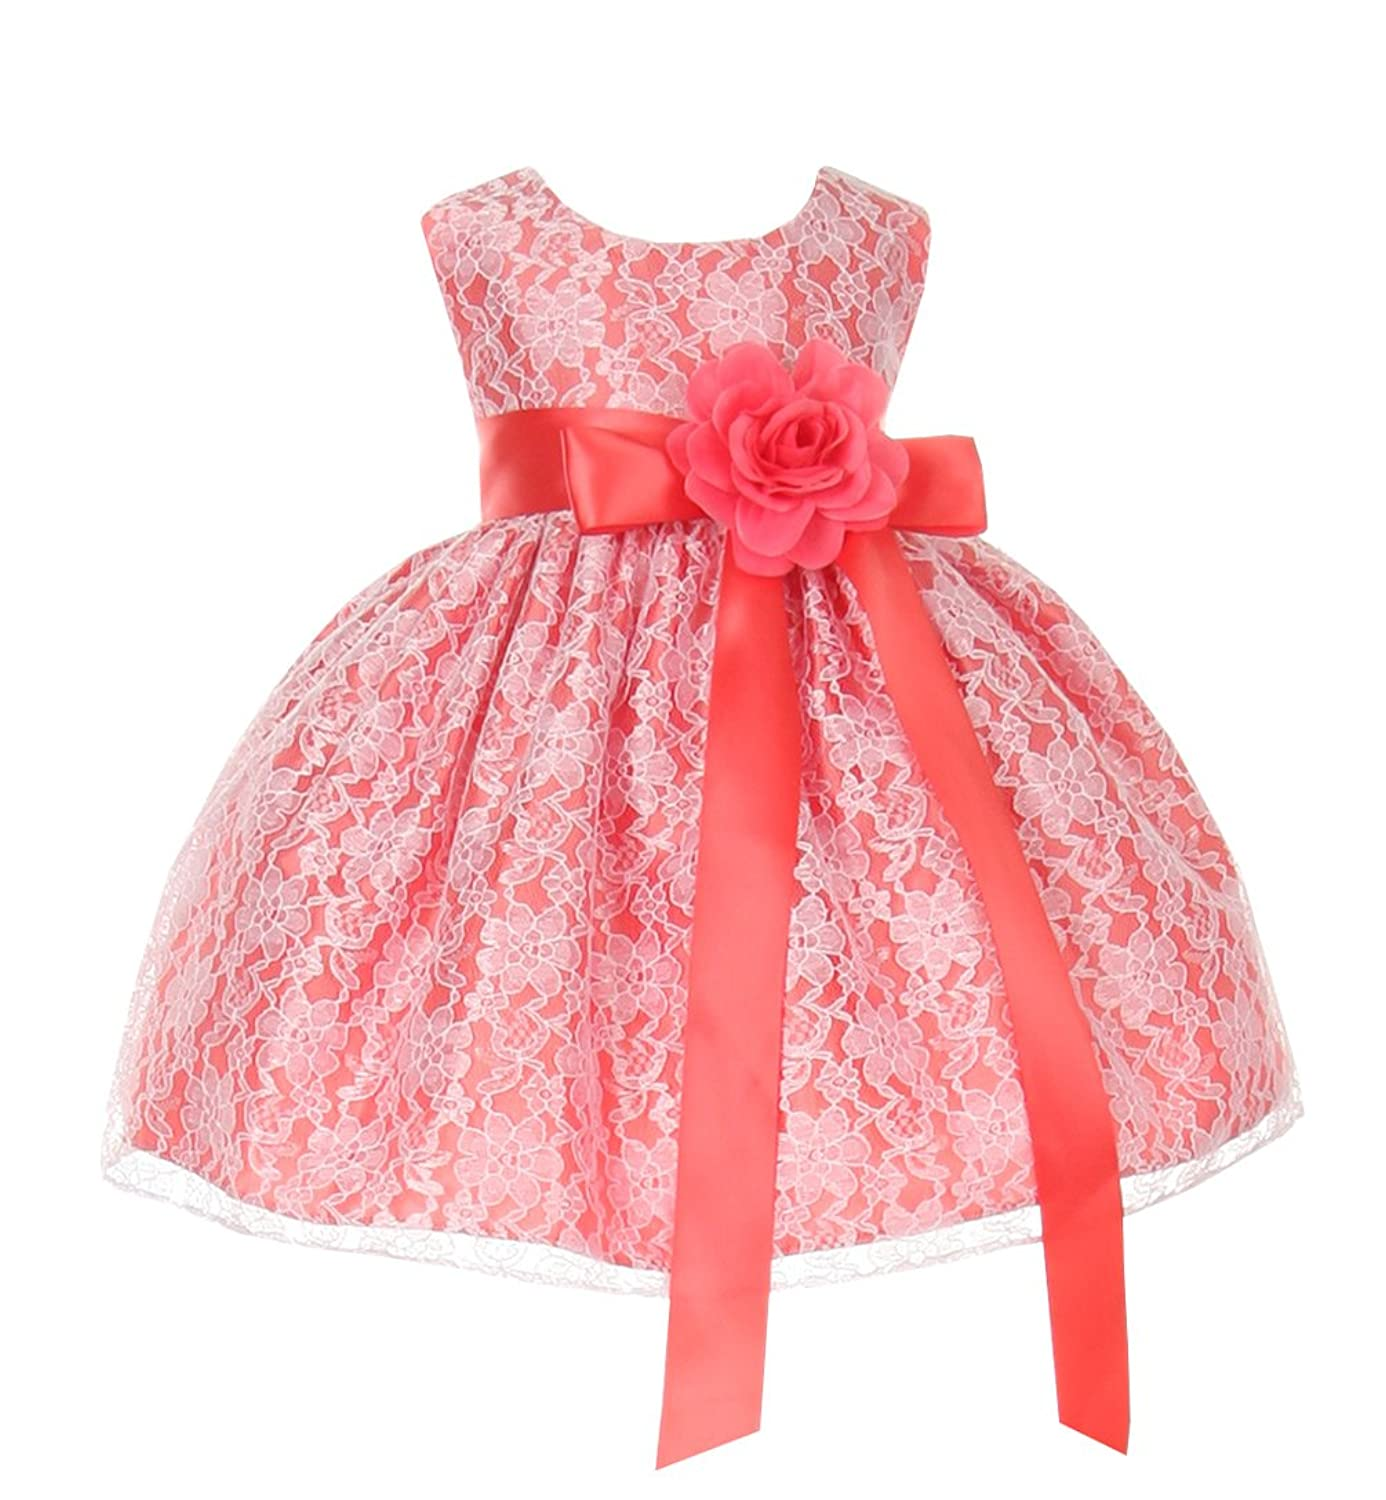 Cinderella Couture Baby Girls' Coral Lace Dress Coral Sash Coral Flw 12M M 1132B